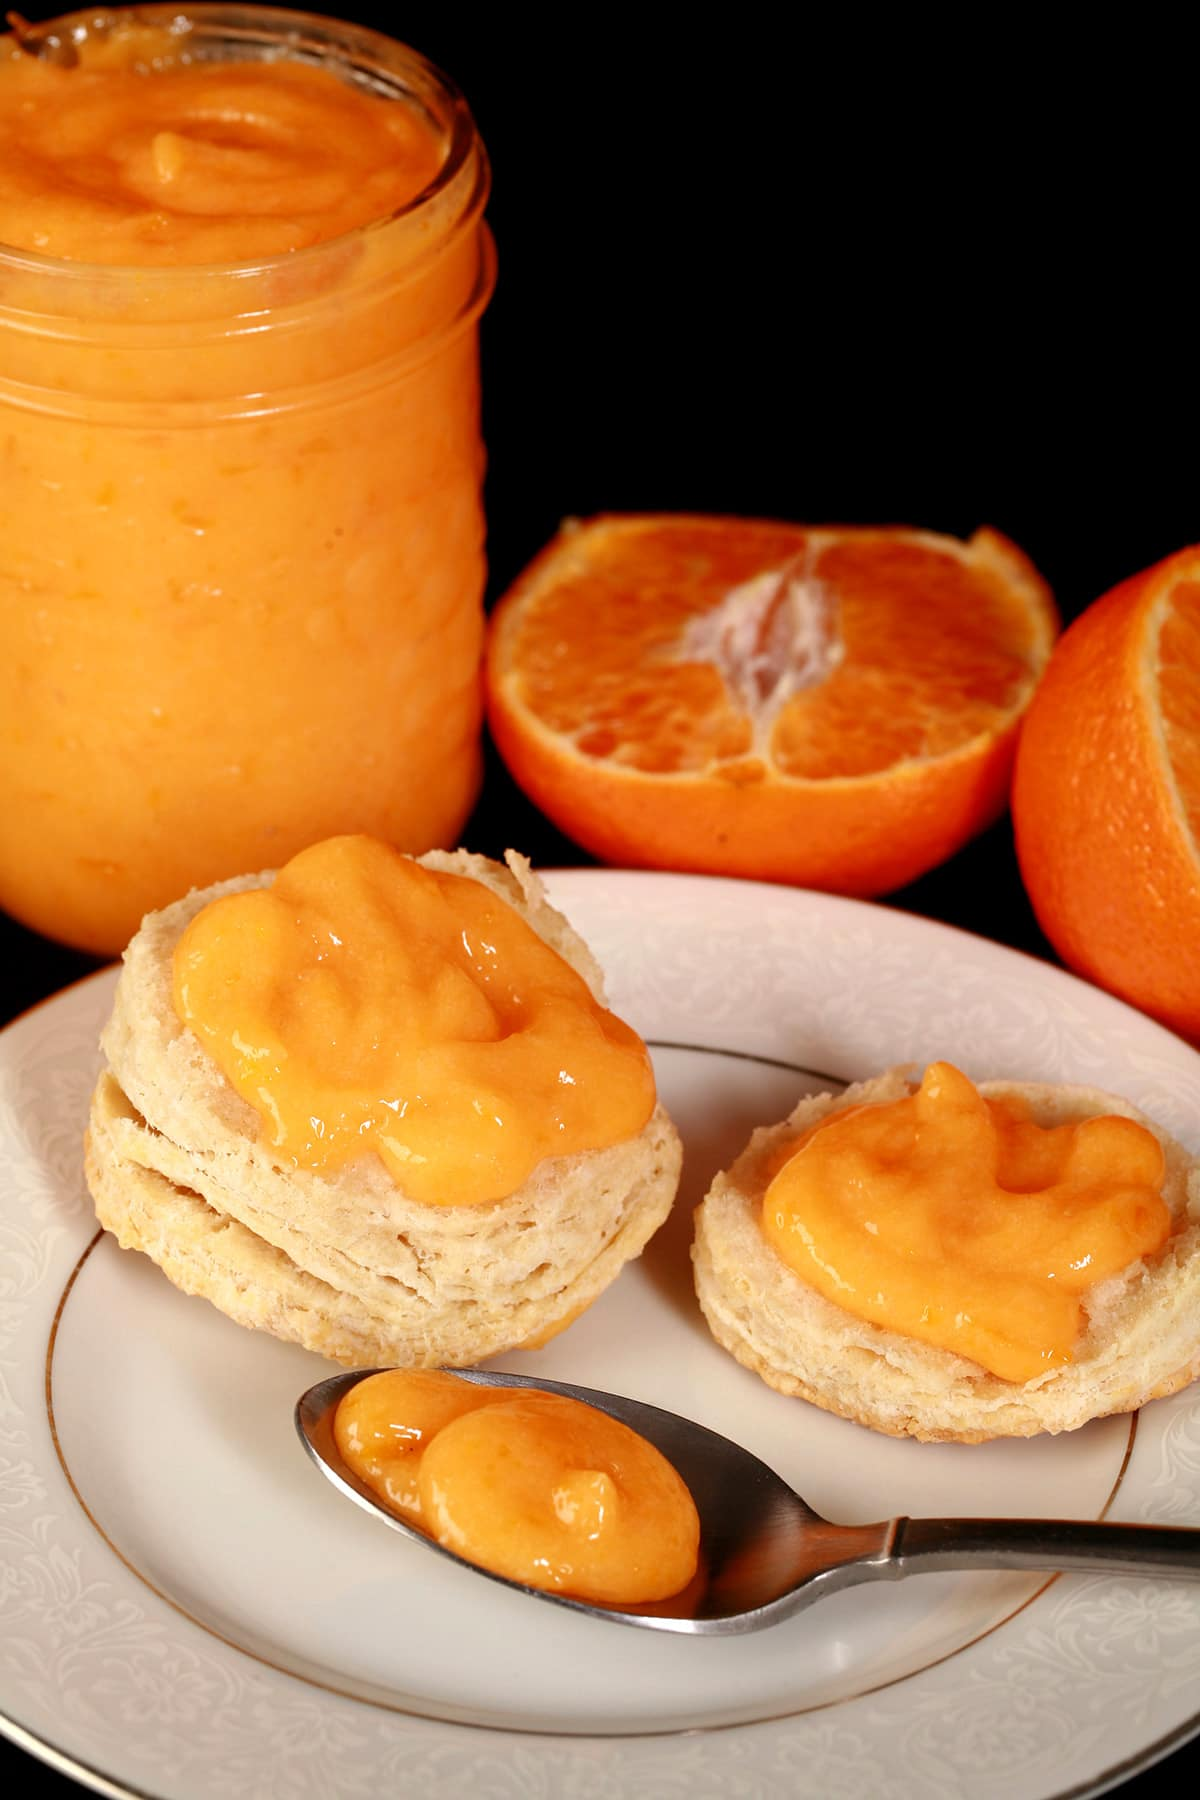 A sliced biscuit topped with orange curd, on a plate. There is a spoon of curd on the plate, and a jar of it next to the plate.